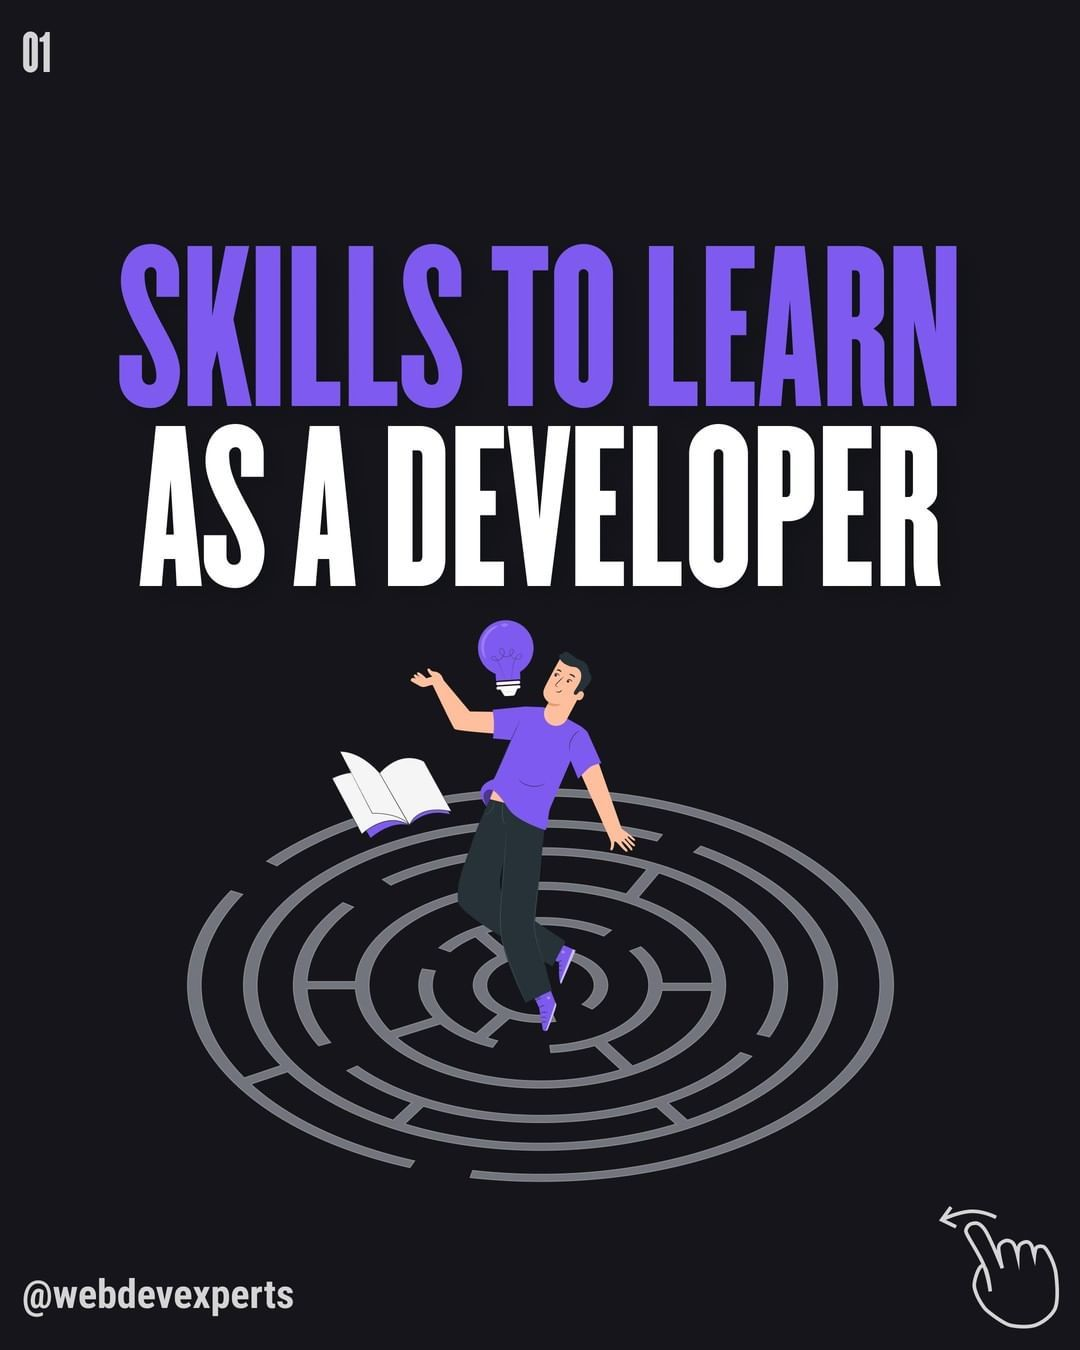 Skill to learn as a developer